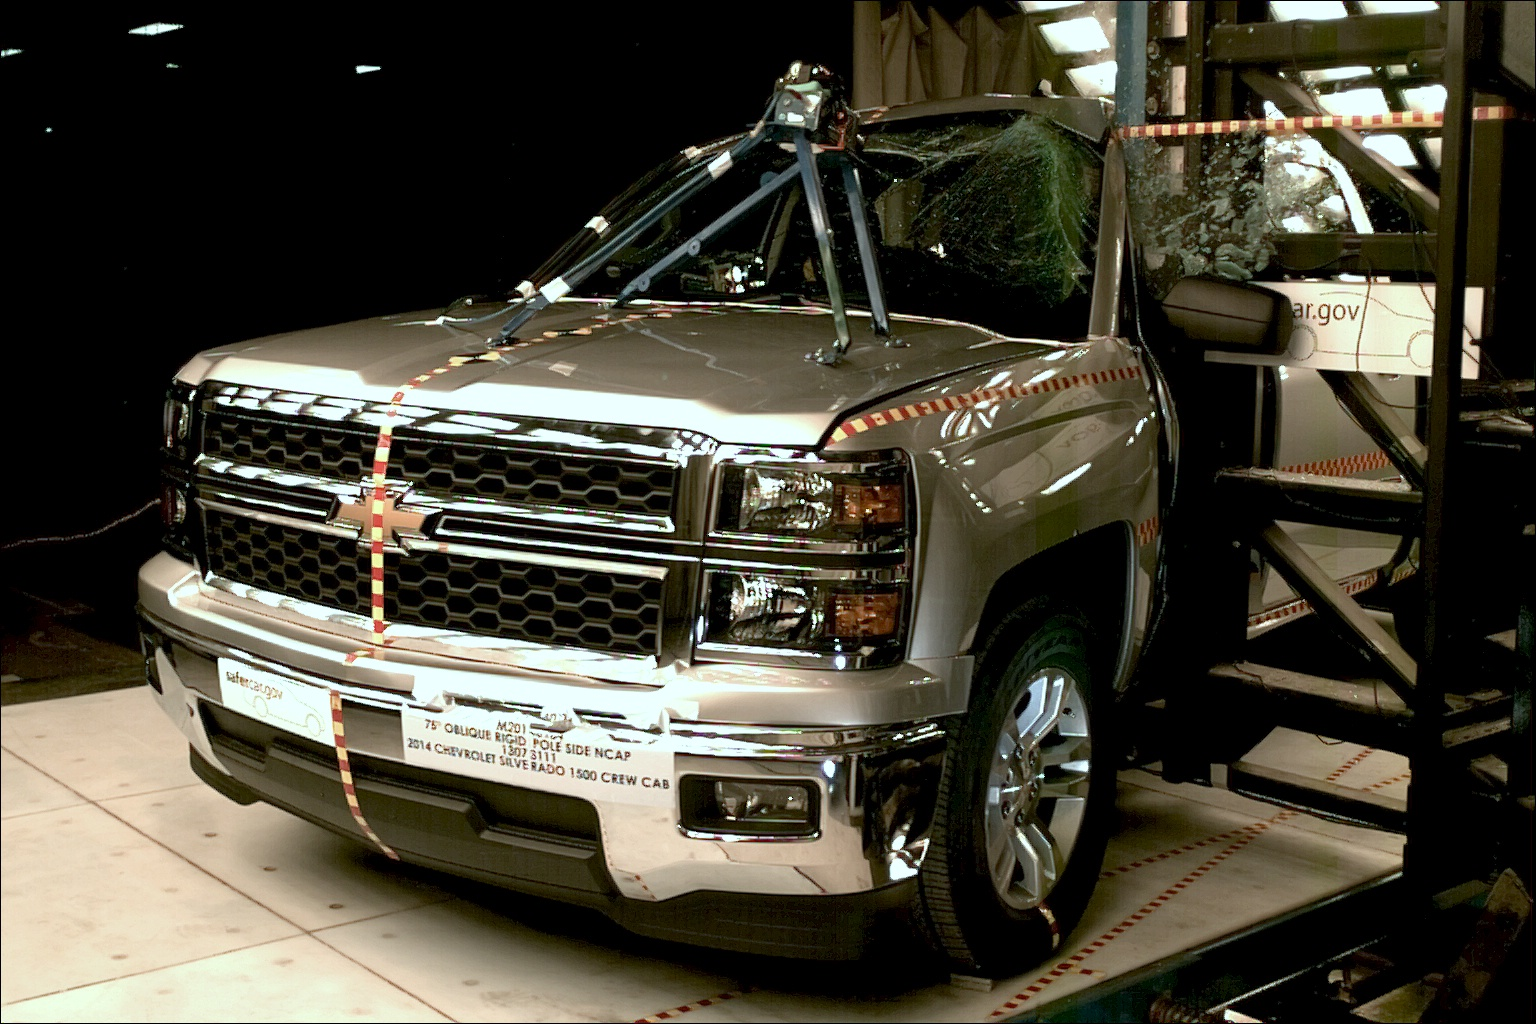 NCAP 2016 Chevrolet Silverado 1500 side pole crash test photo